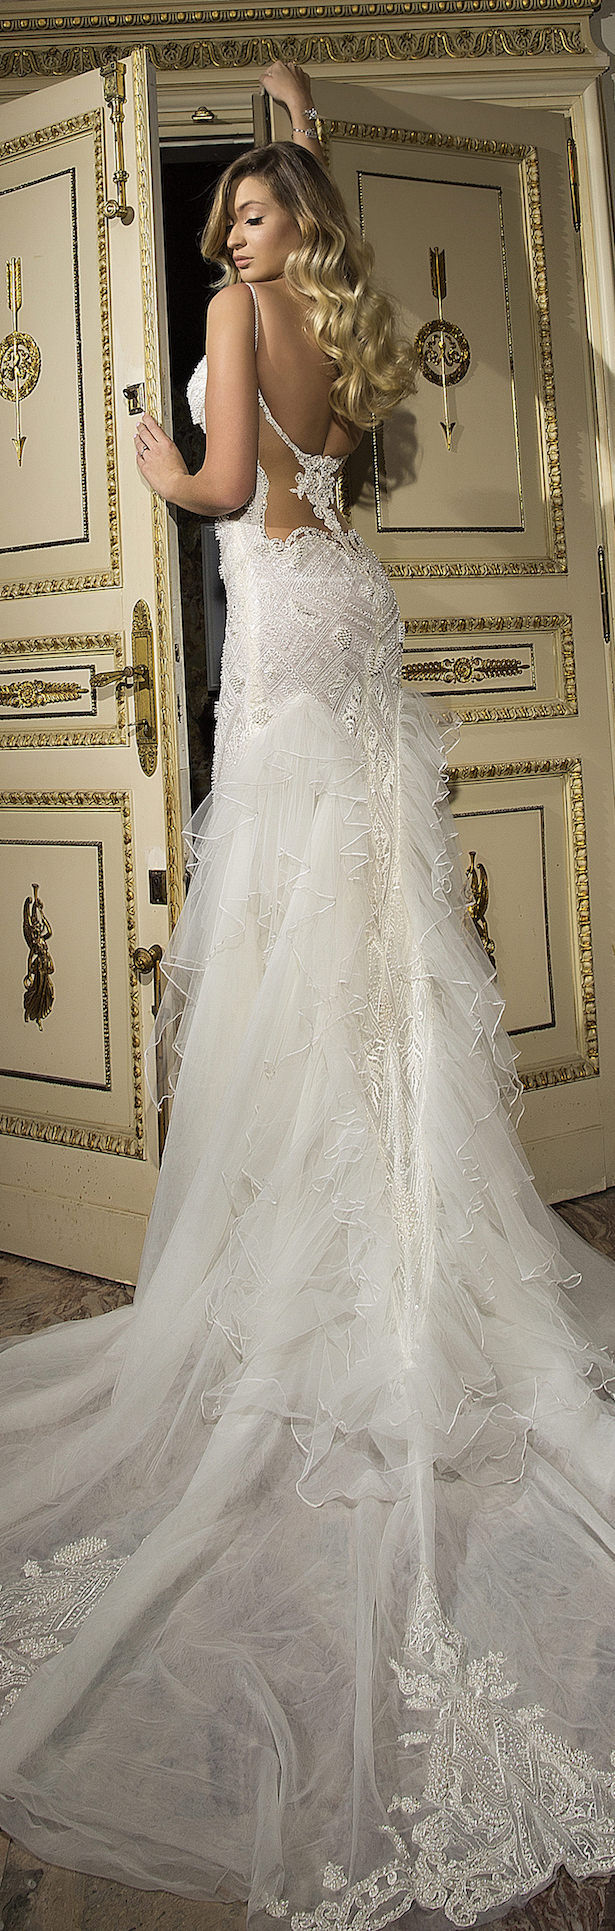 Wedding Dress Rental